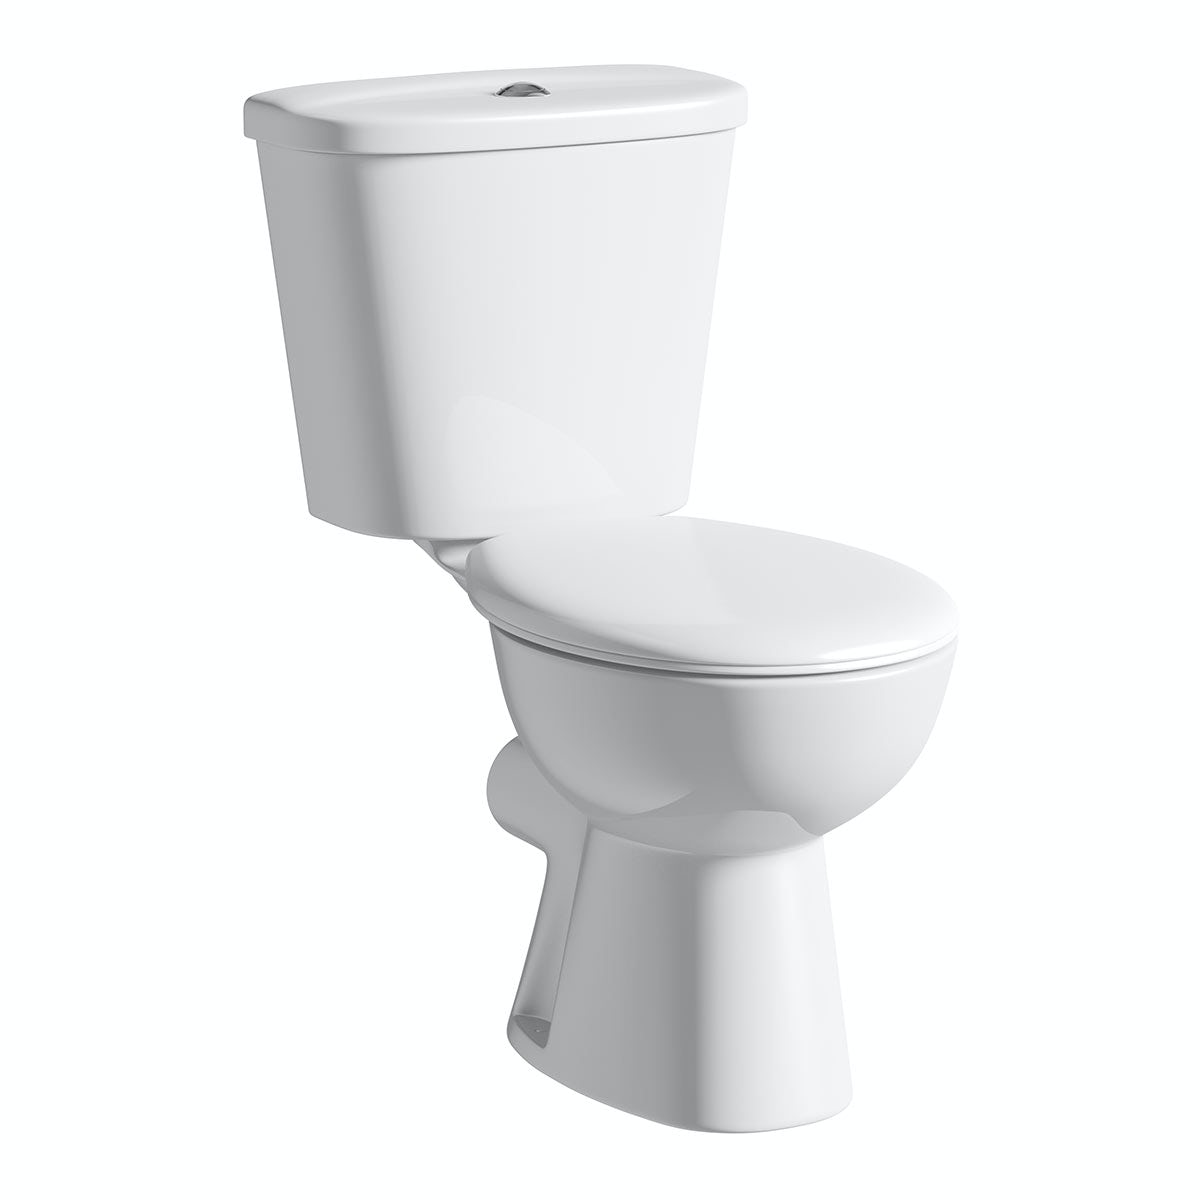 Clarity close coupled toilet with seat